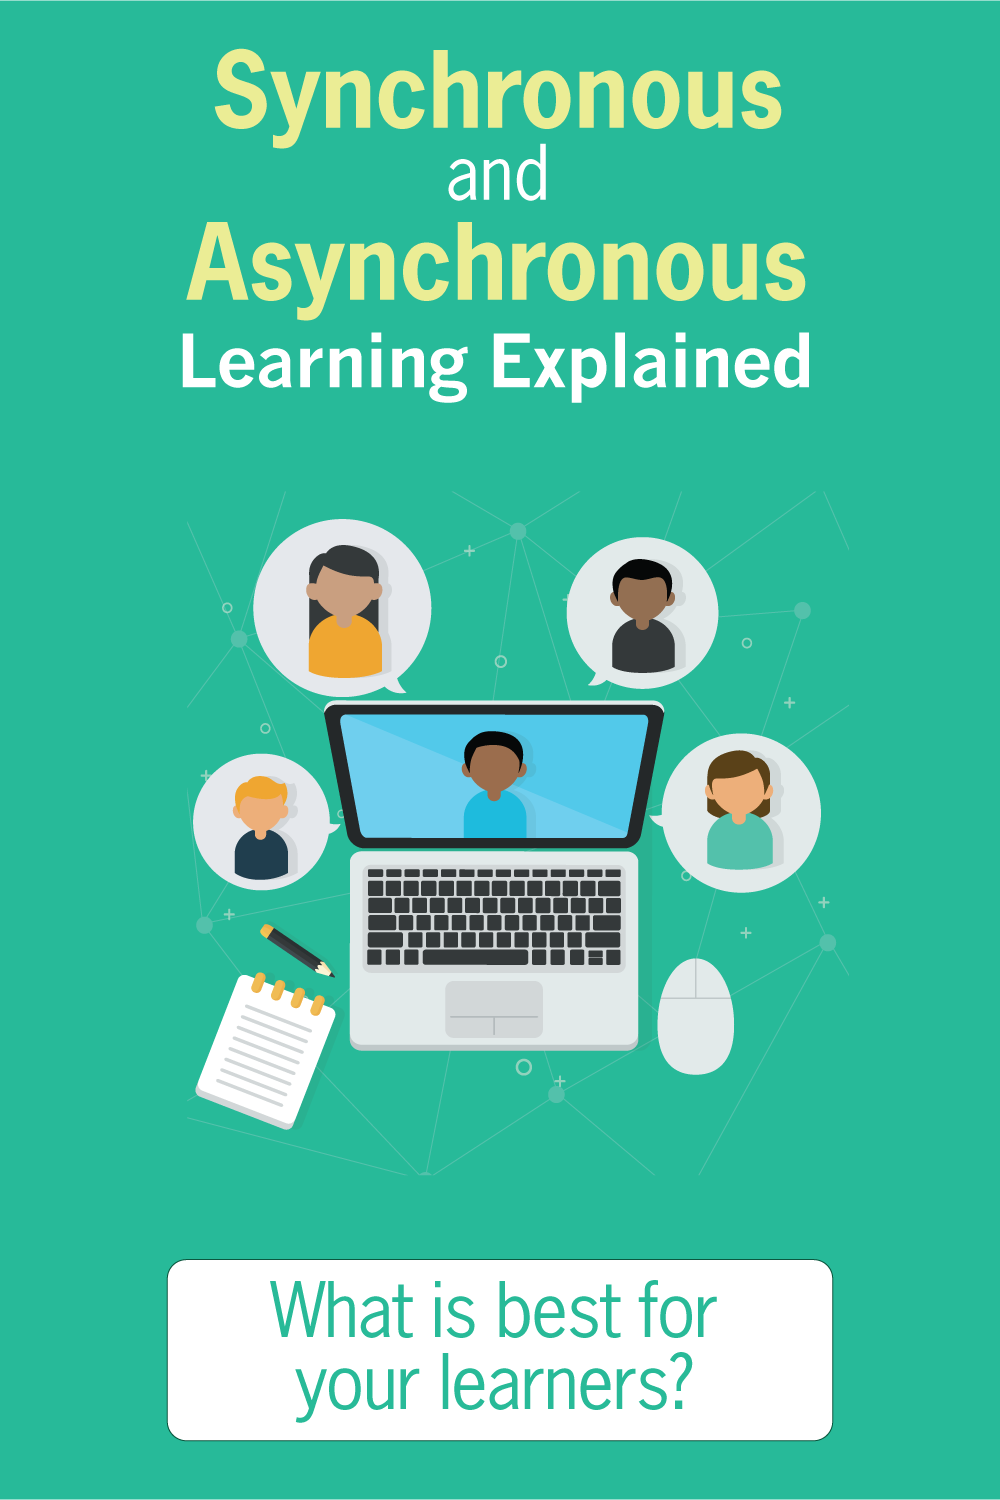 Synchronous and Asynchronous Learning Explained